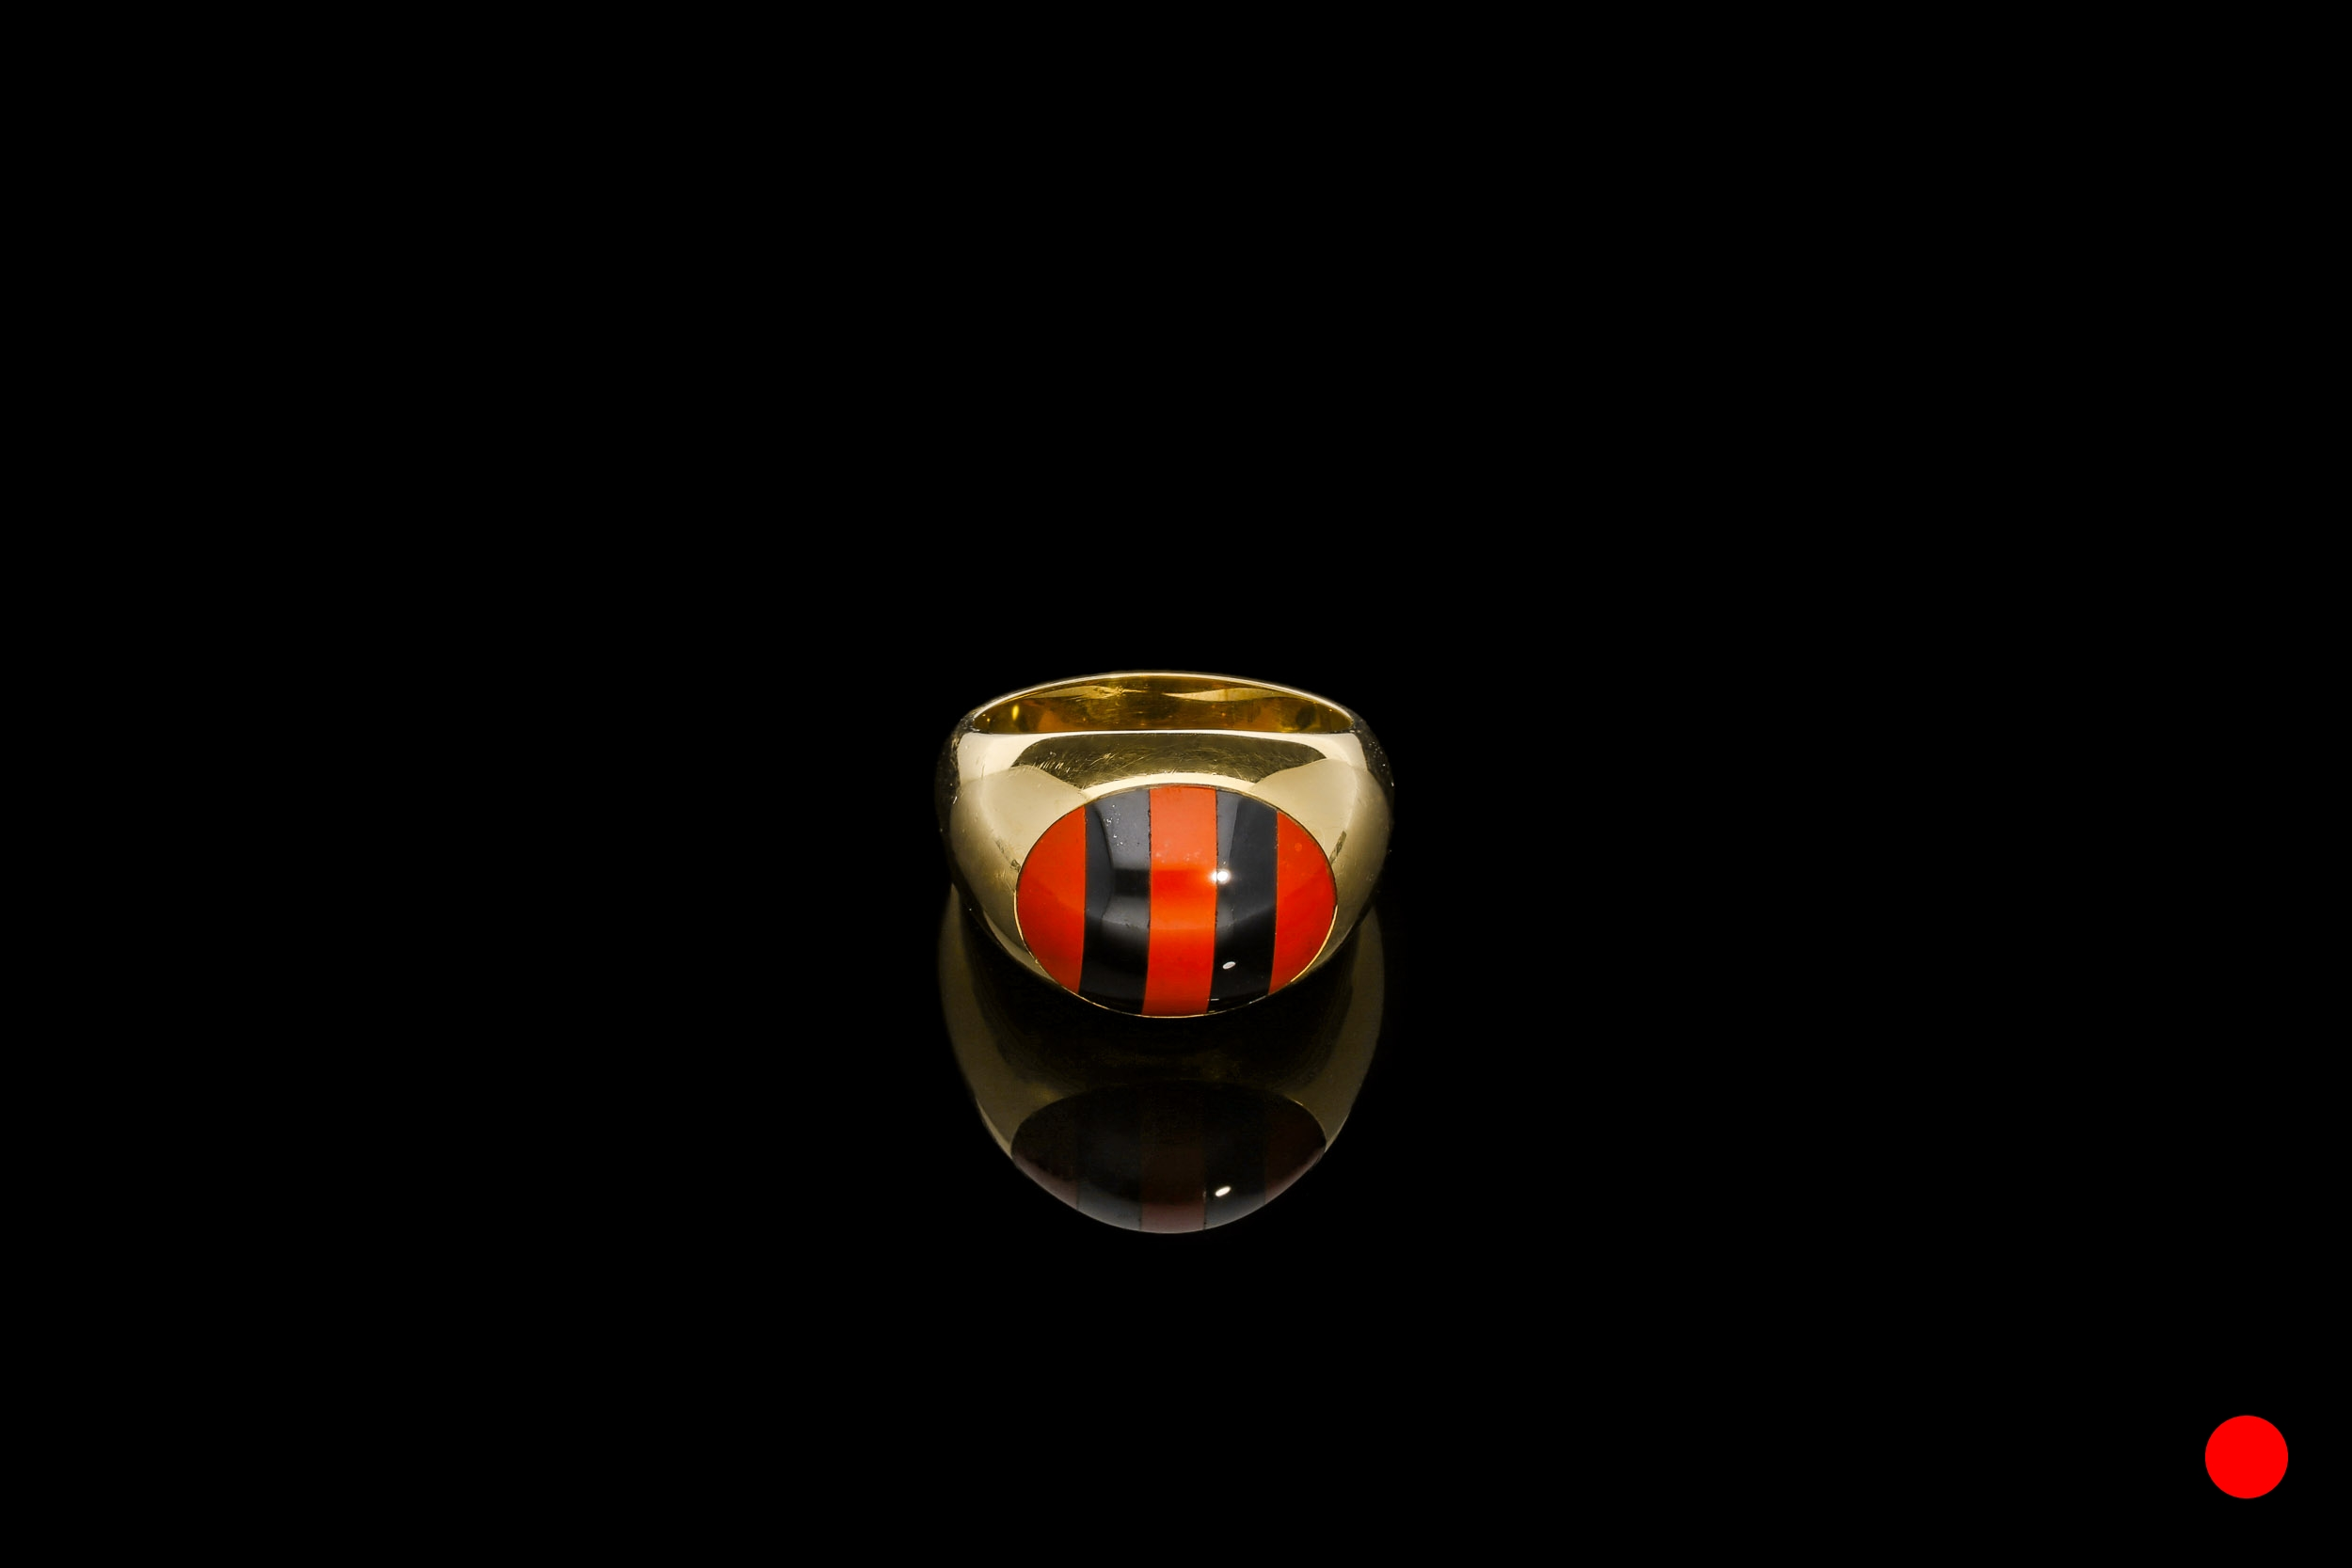 A fantastic vintage Tiffany onyx and carnelian signet ring set | £1750